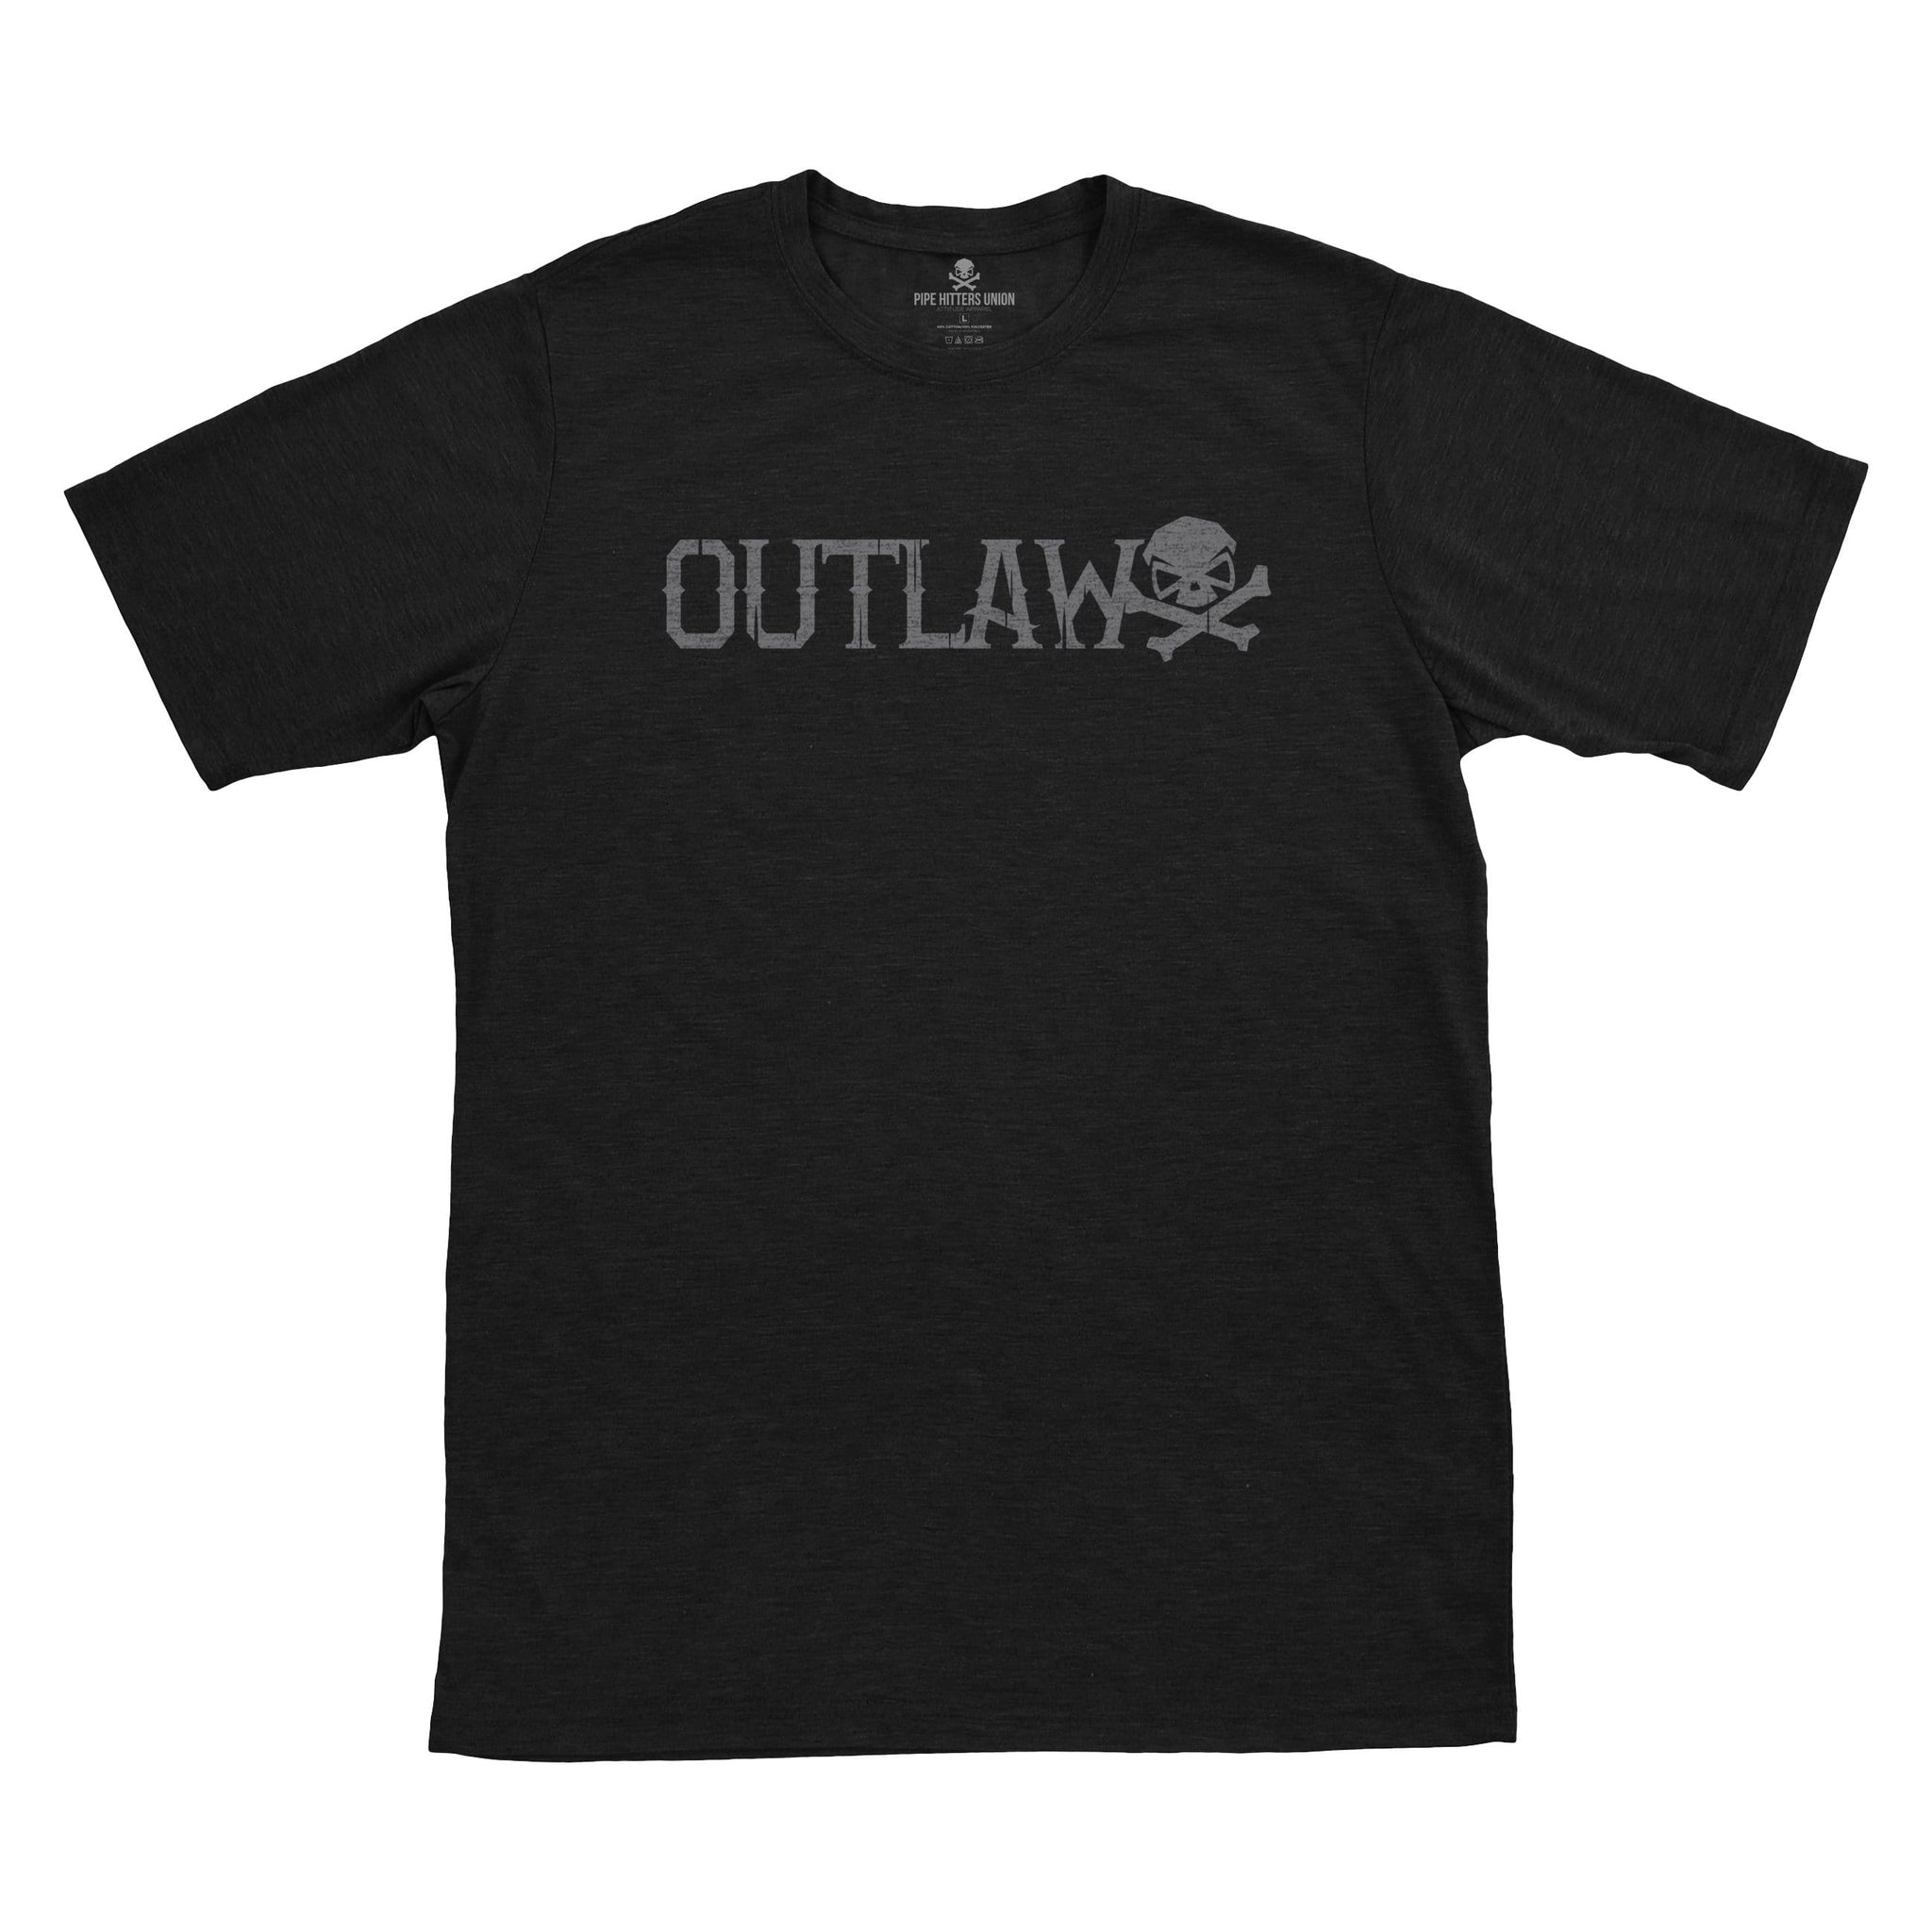 Outlaw - Black - T-Shirts - Pipe Hitters Union